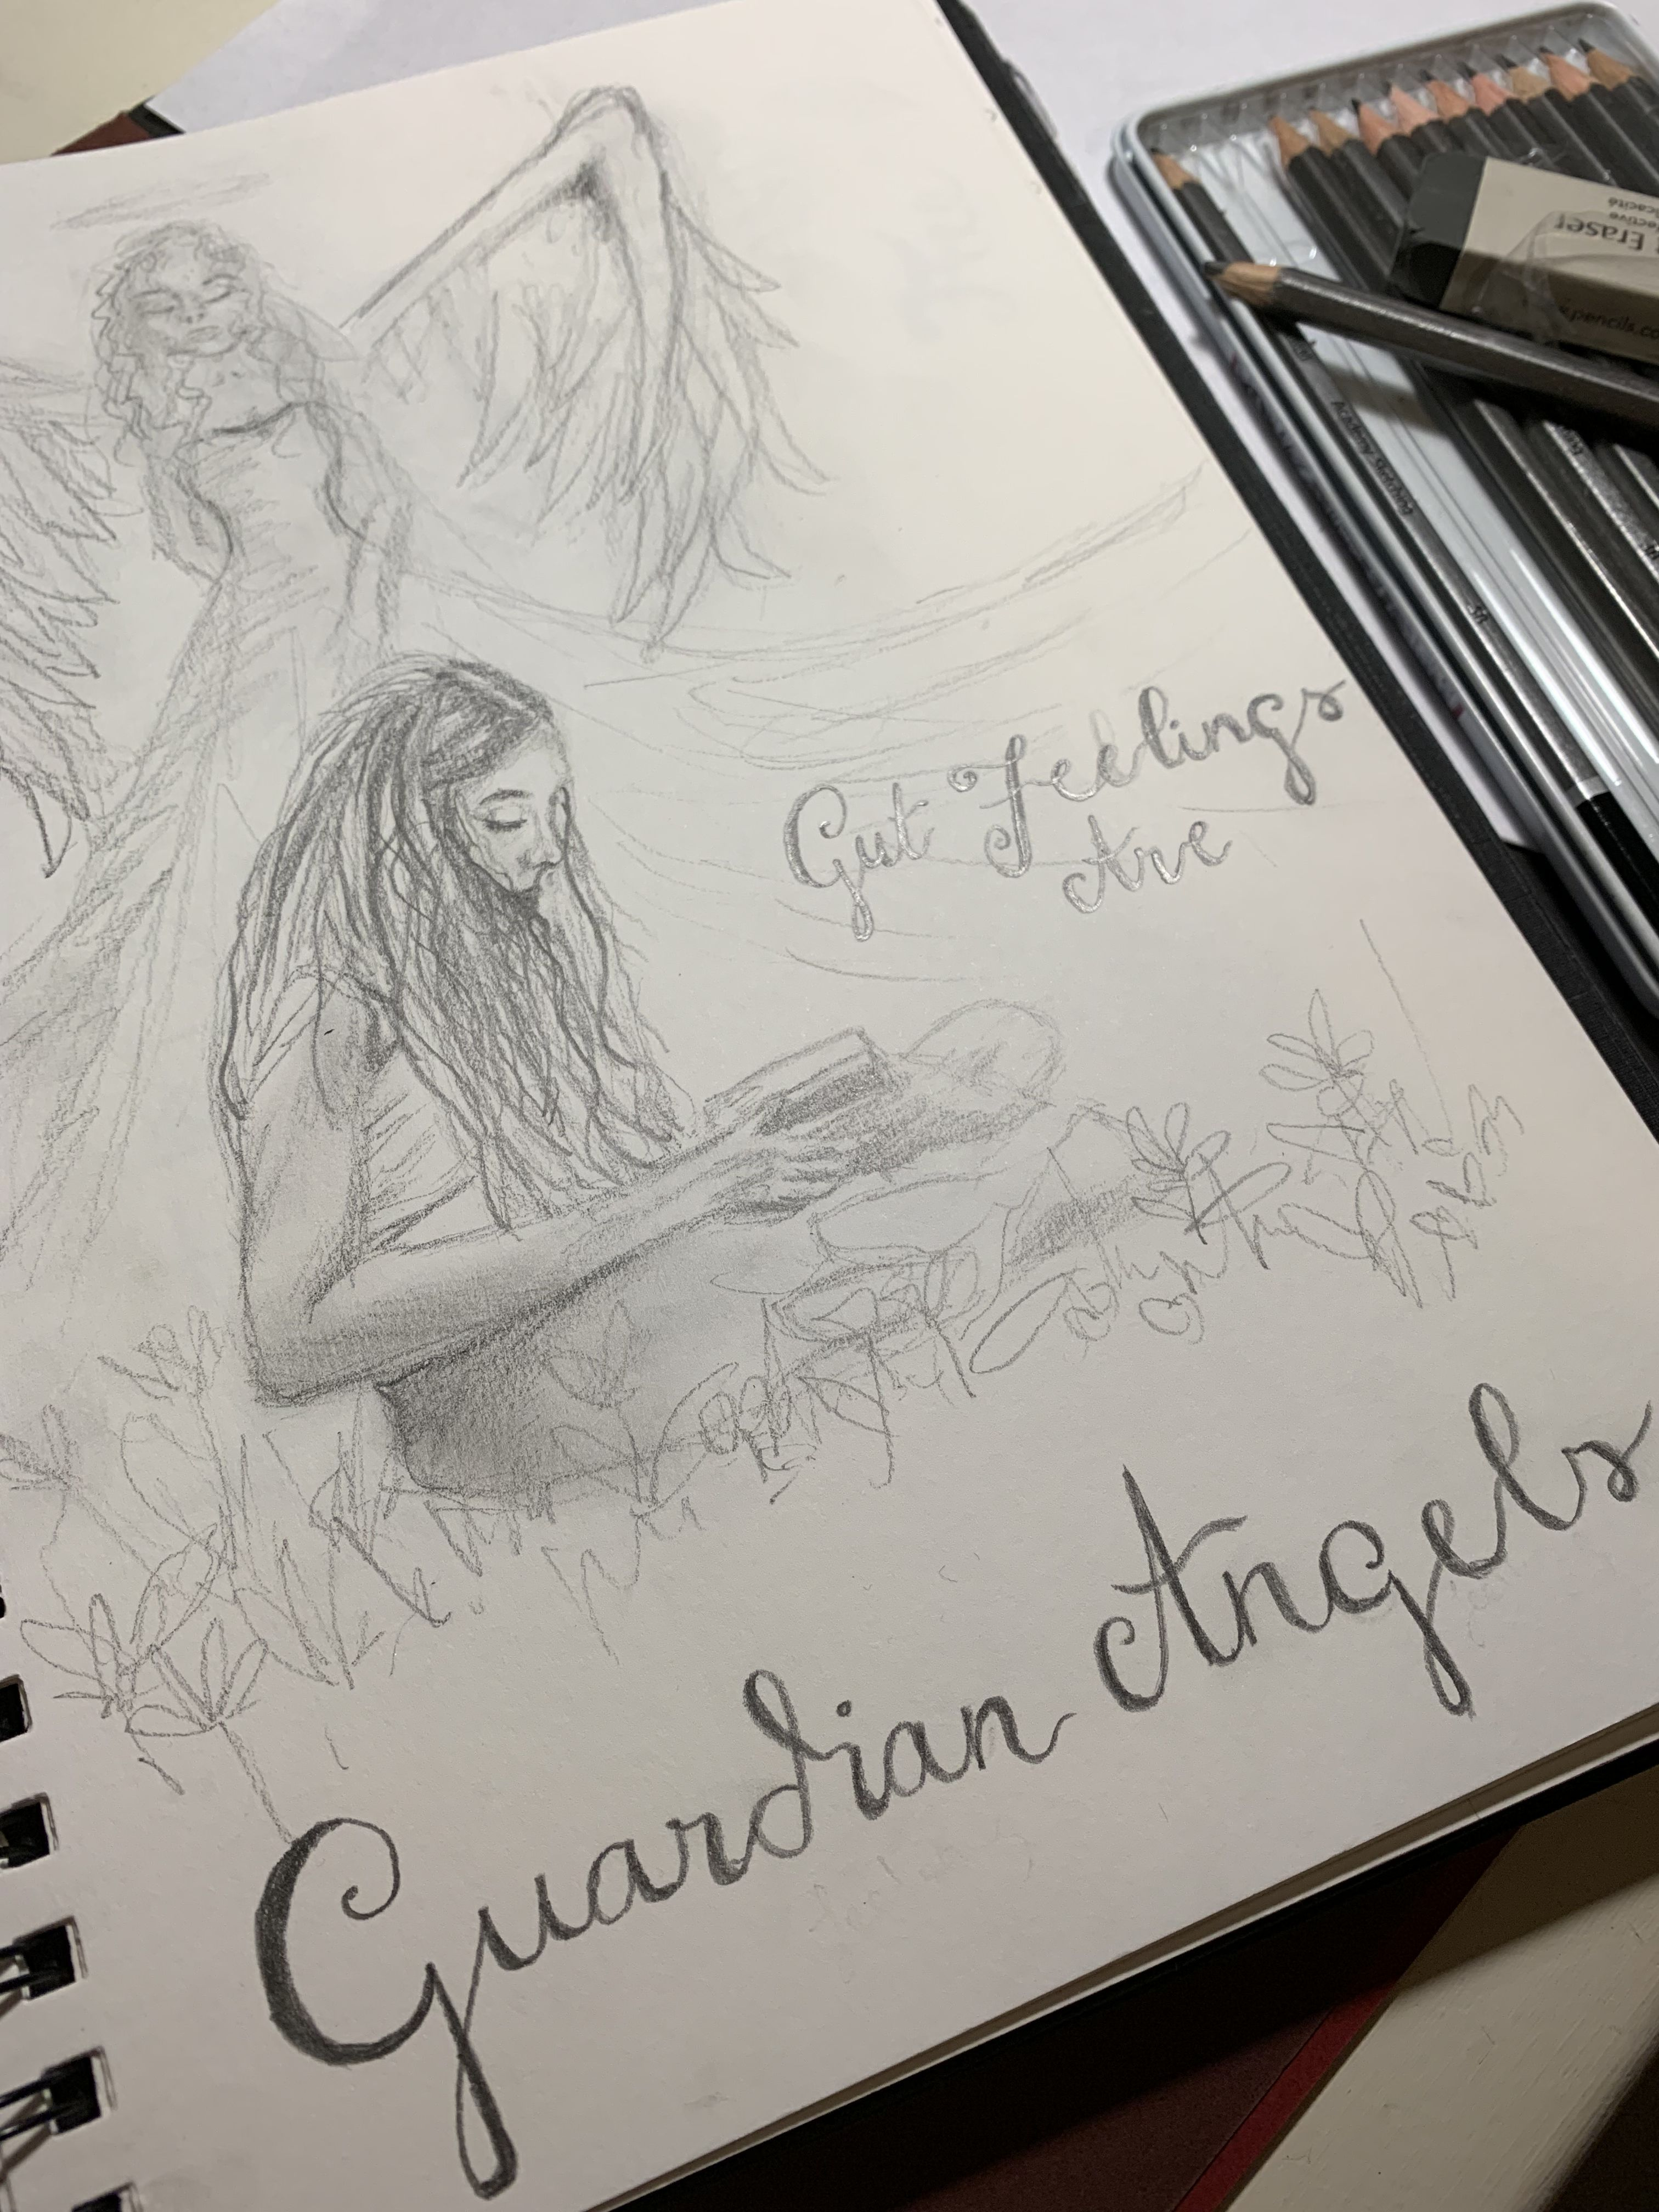 Gut feelings are guardian angels 💫 girl with guardian angel pencil